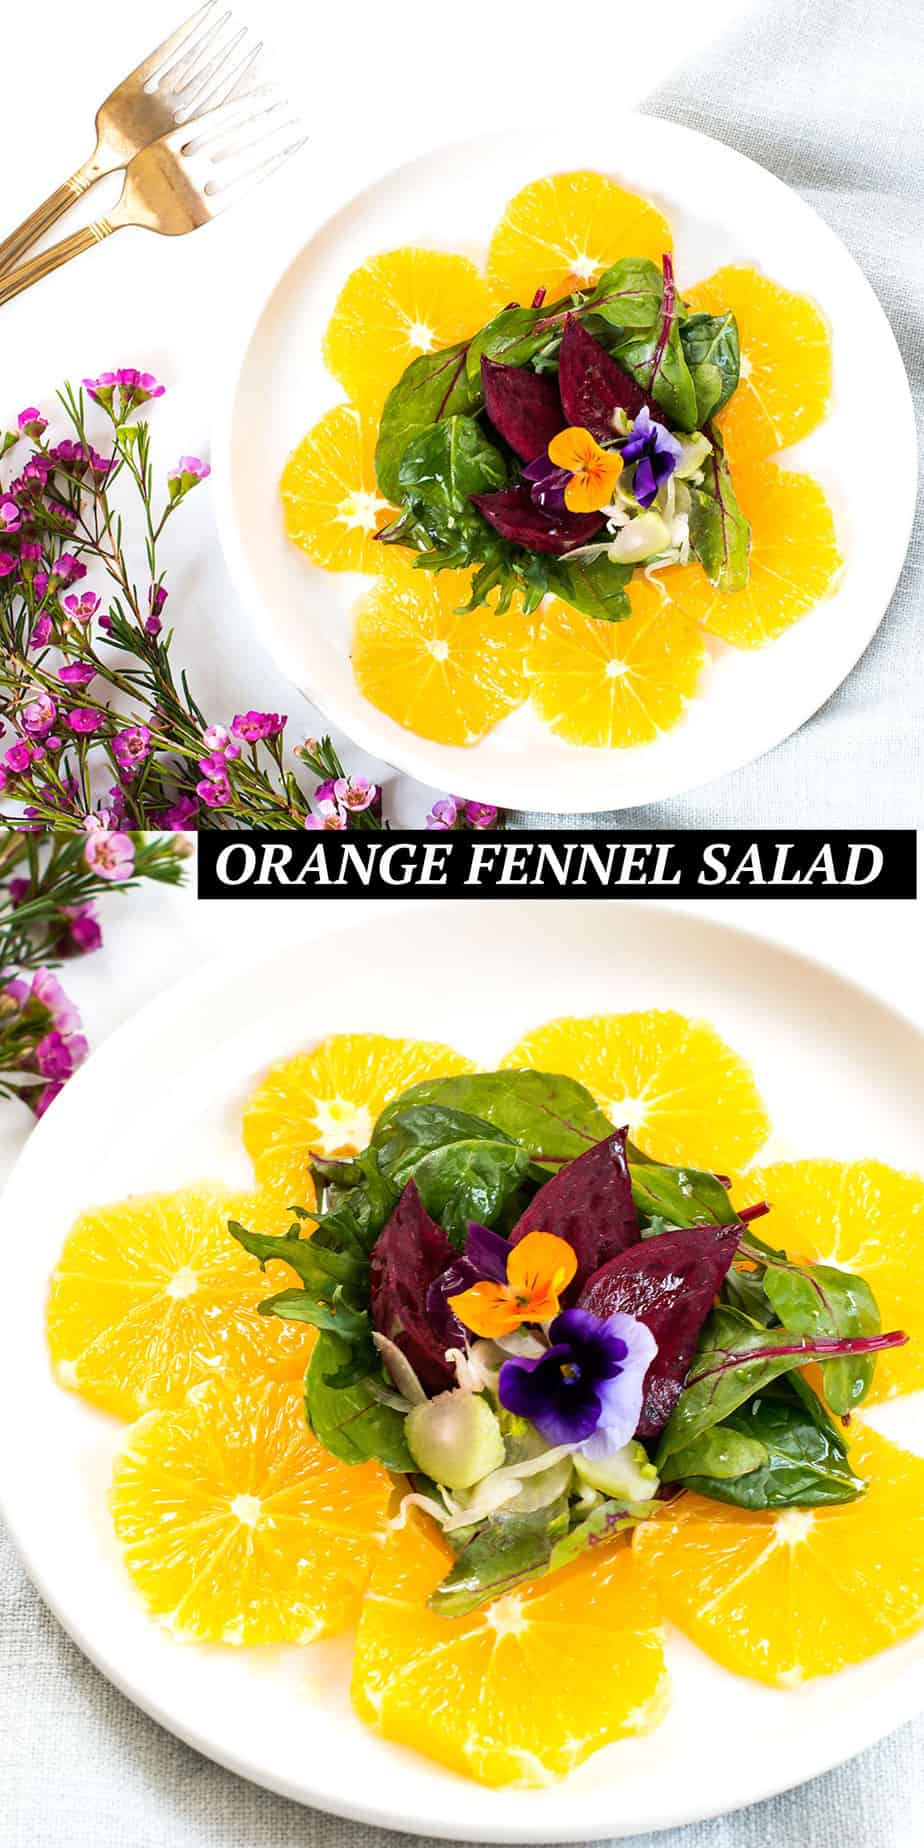 ORANGE-FENNEL-SALAD-RECIPE-PINTEREST